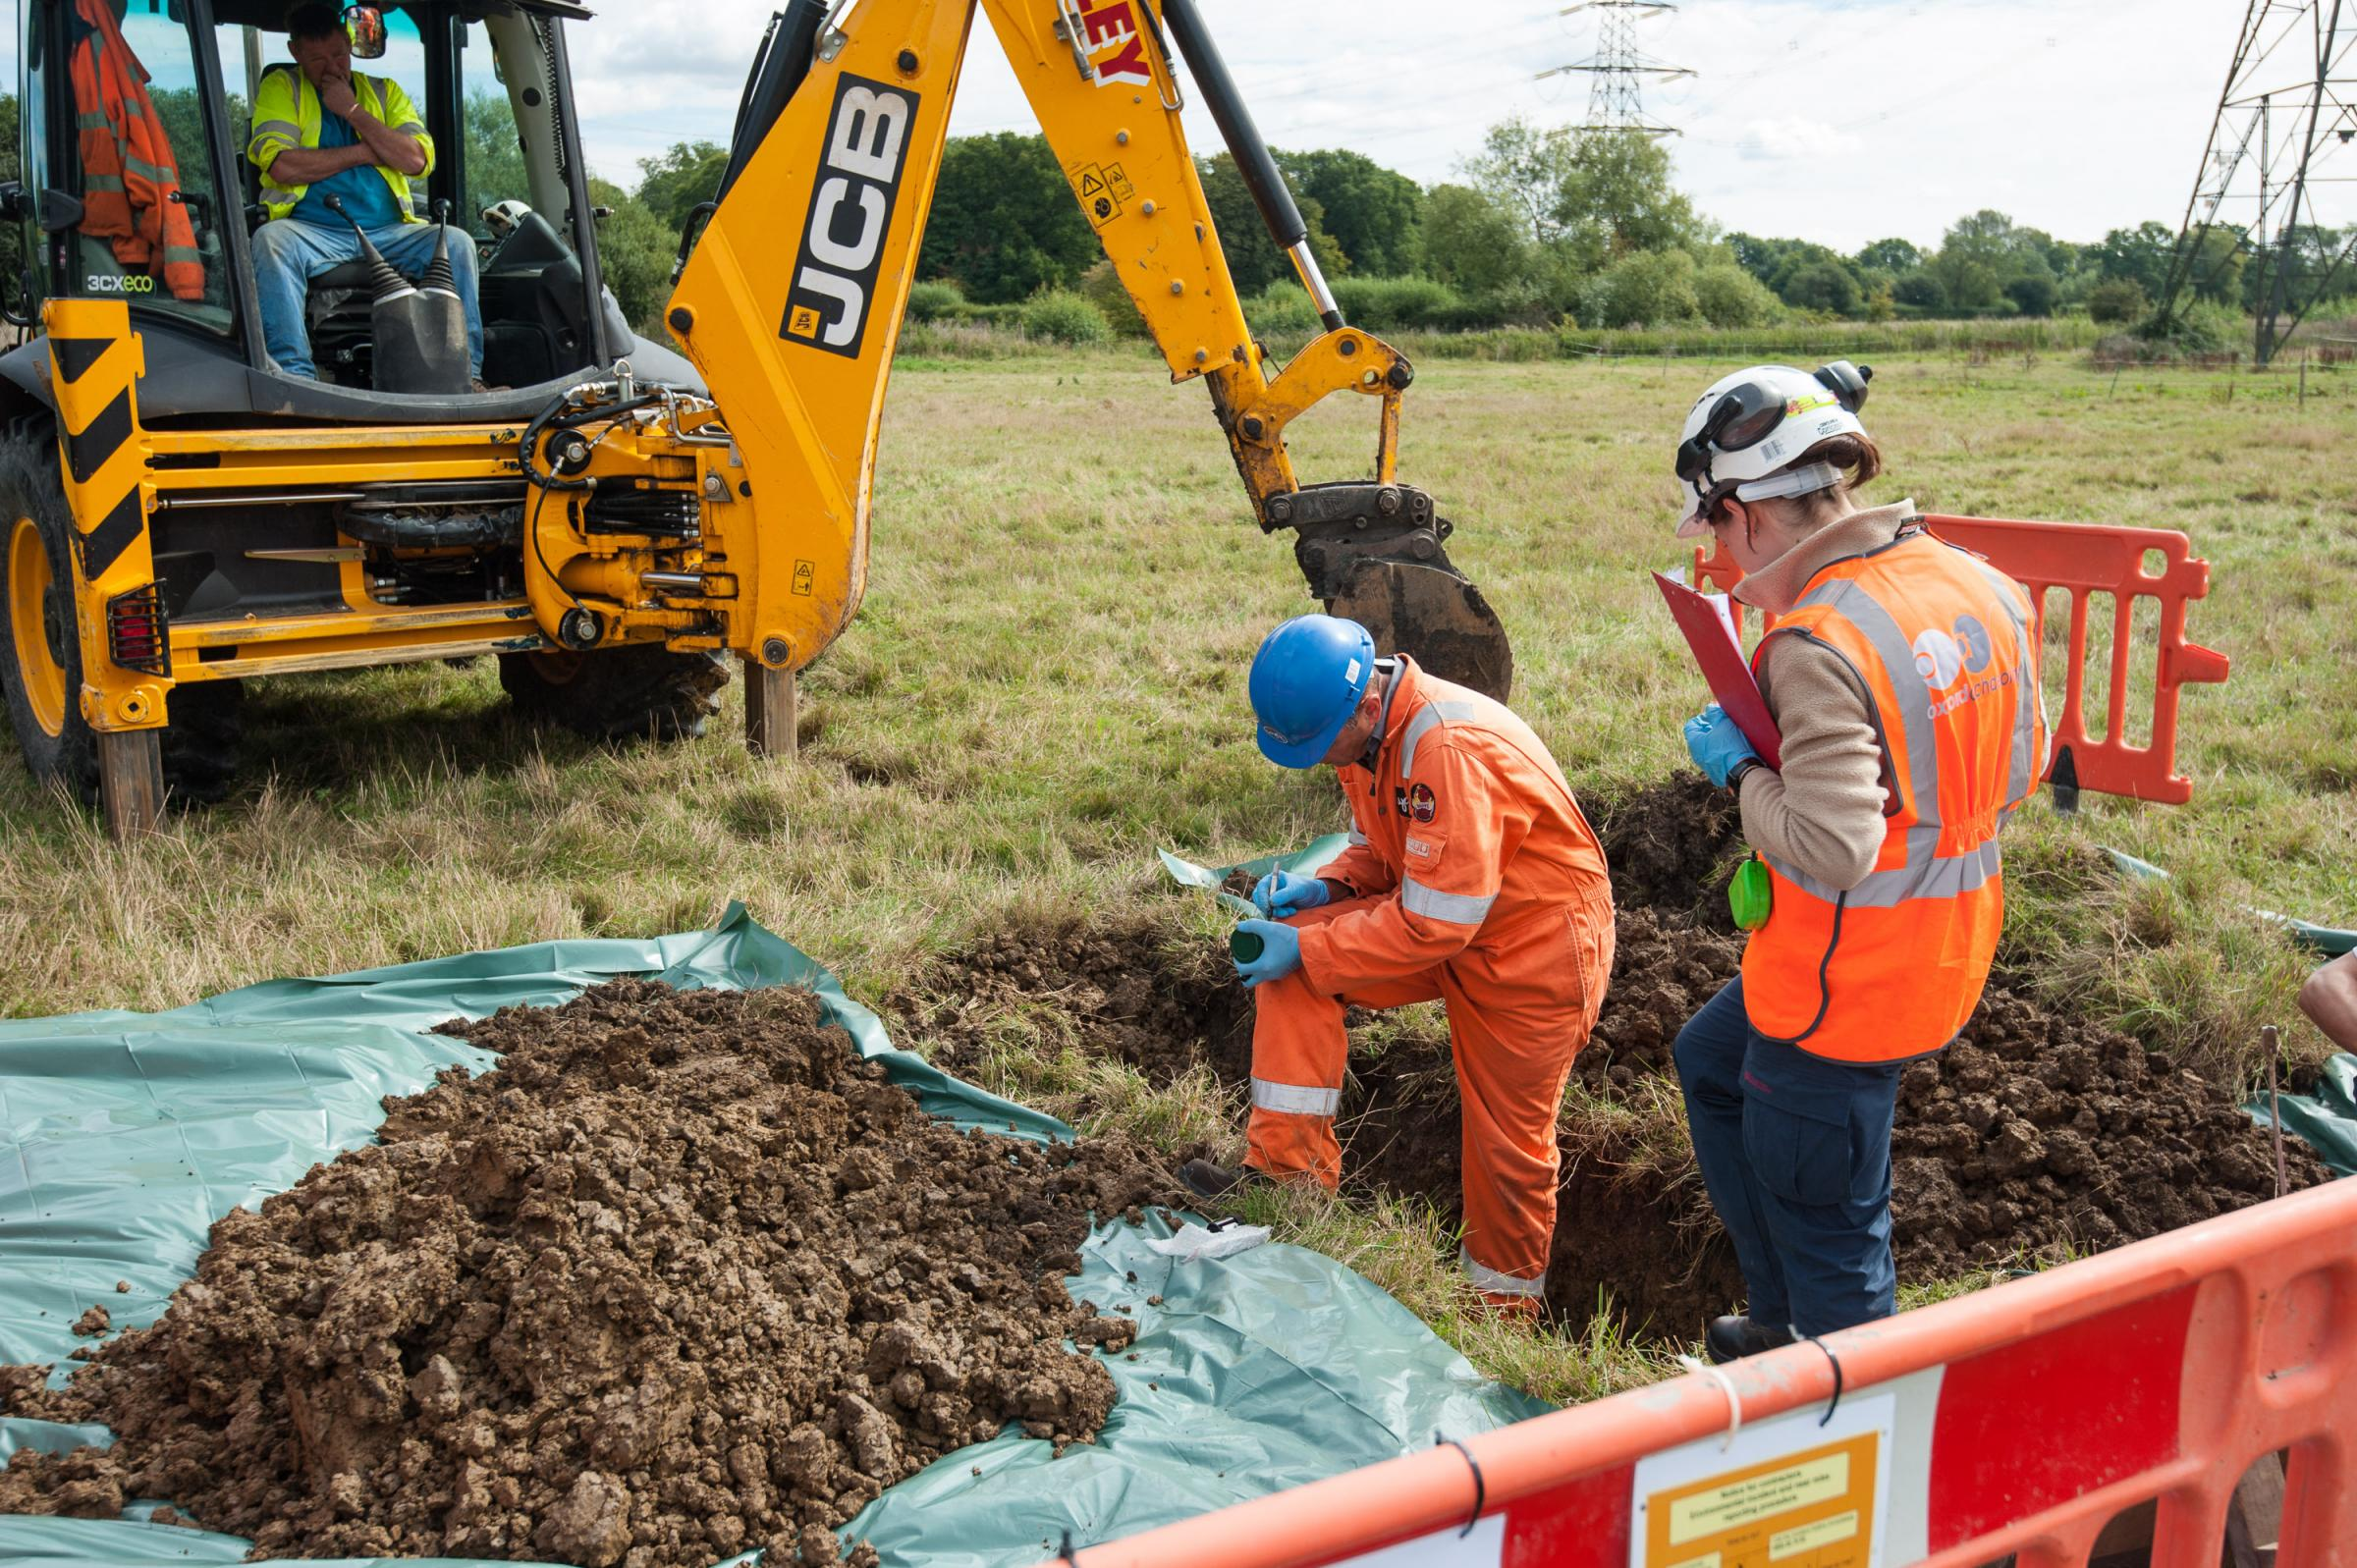 Preliminary work on the £120m flood relief channel starts